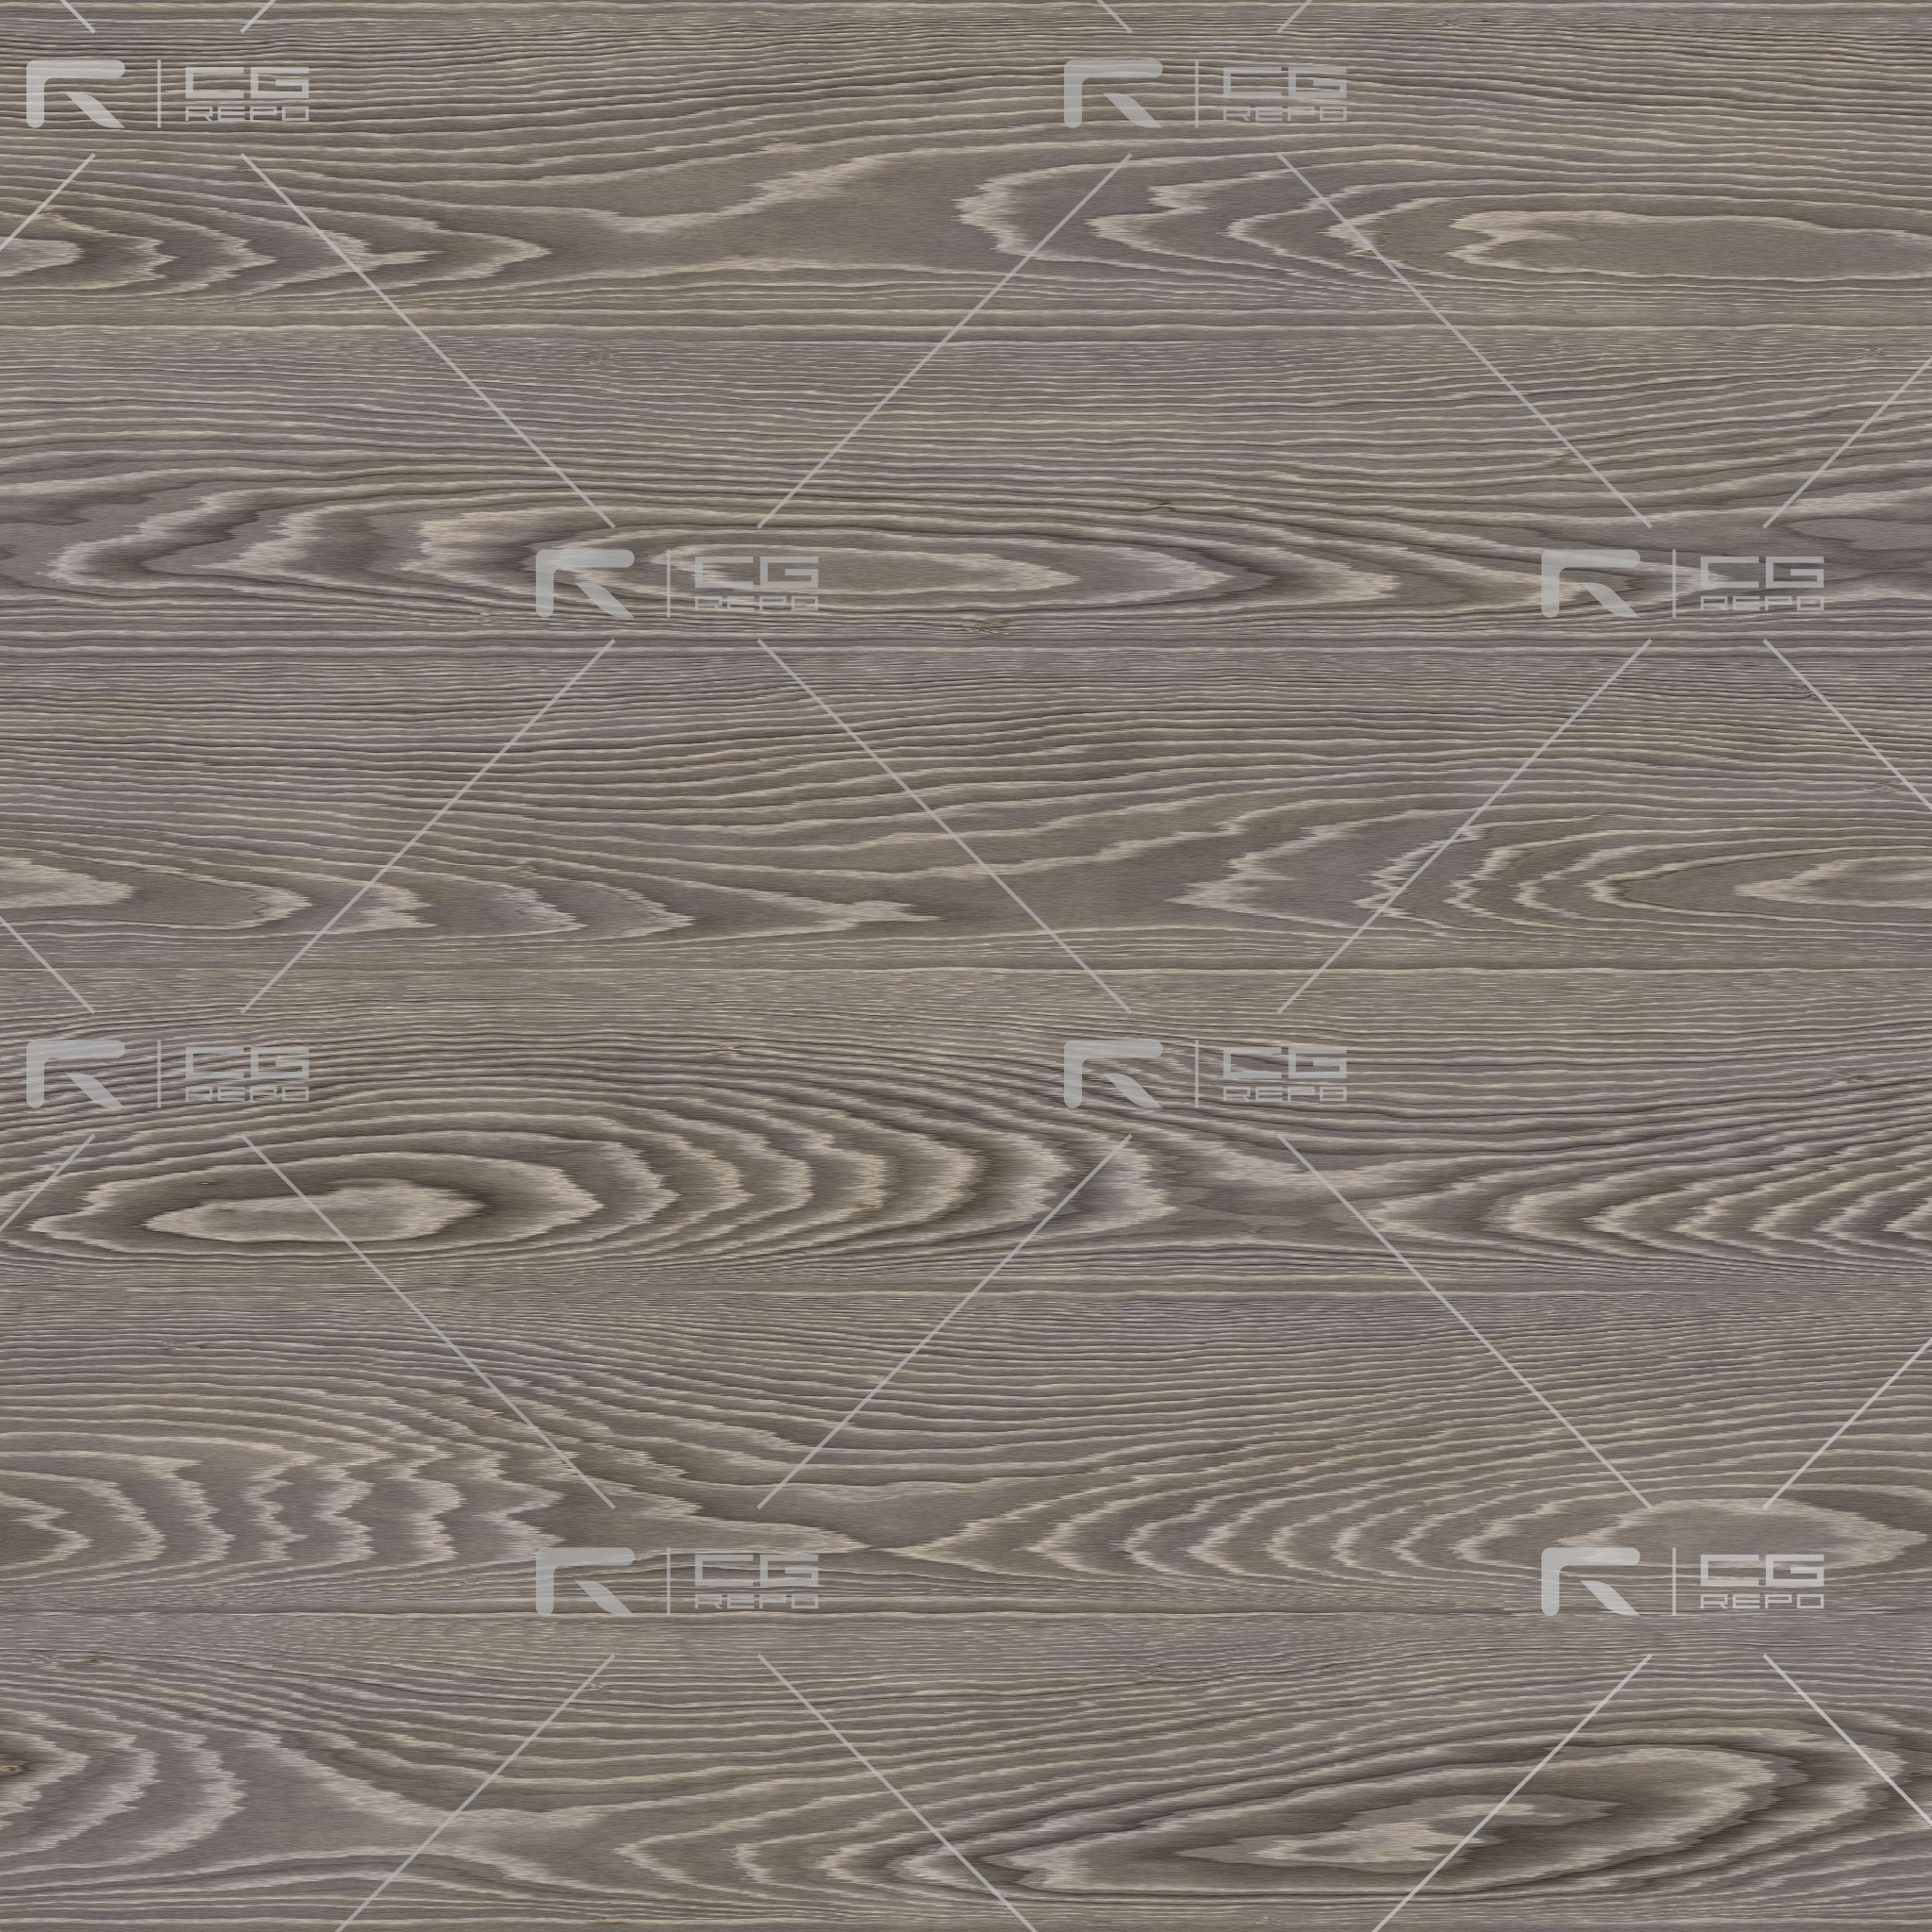 Oak - Smoked Grey - Cathedral Shape BaseColor Texture